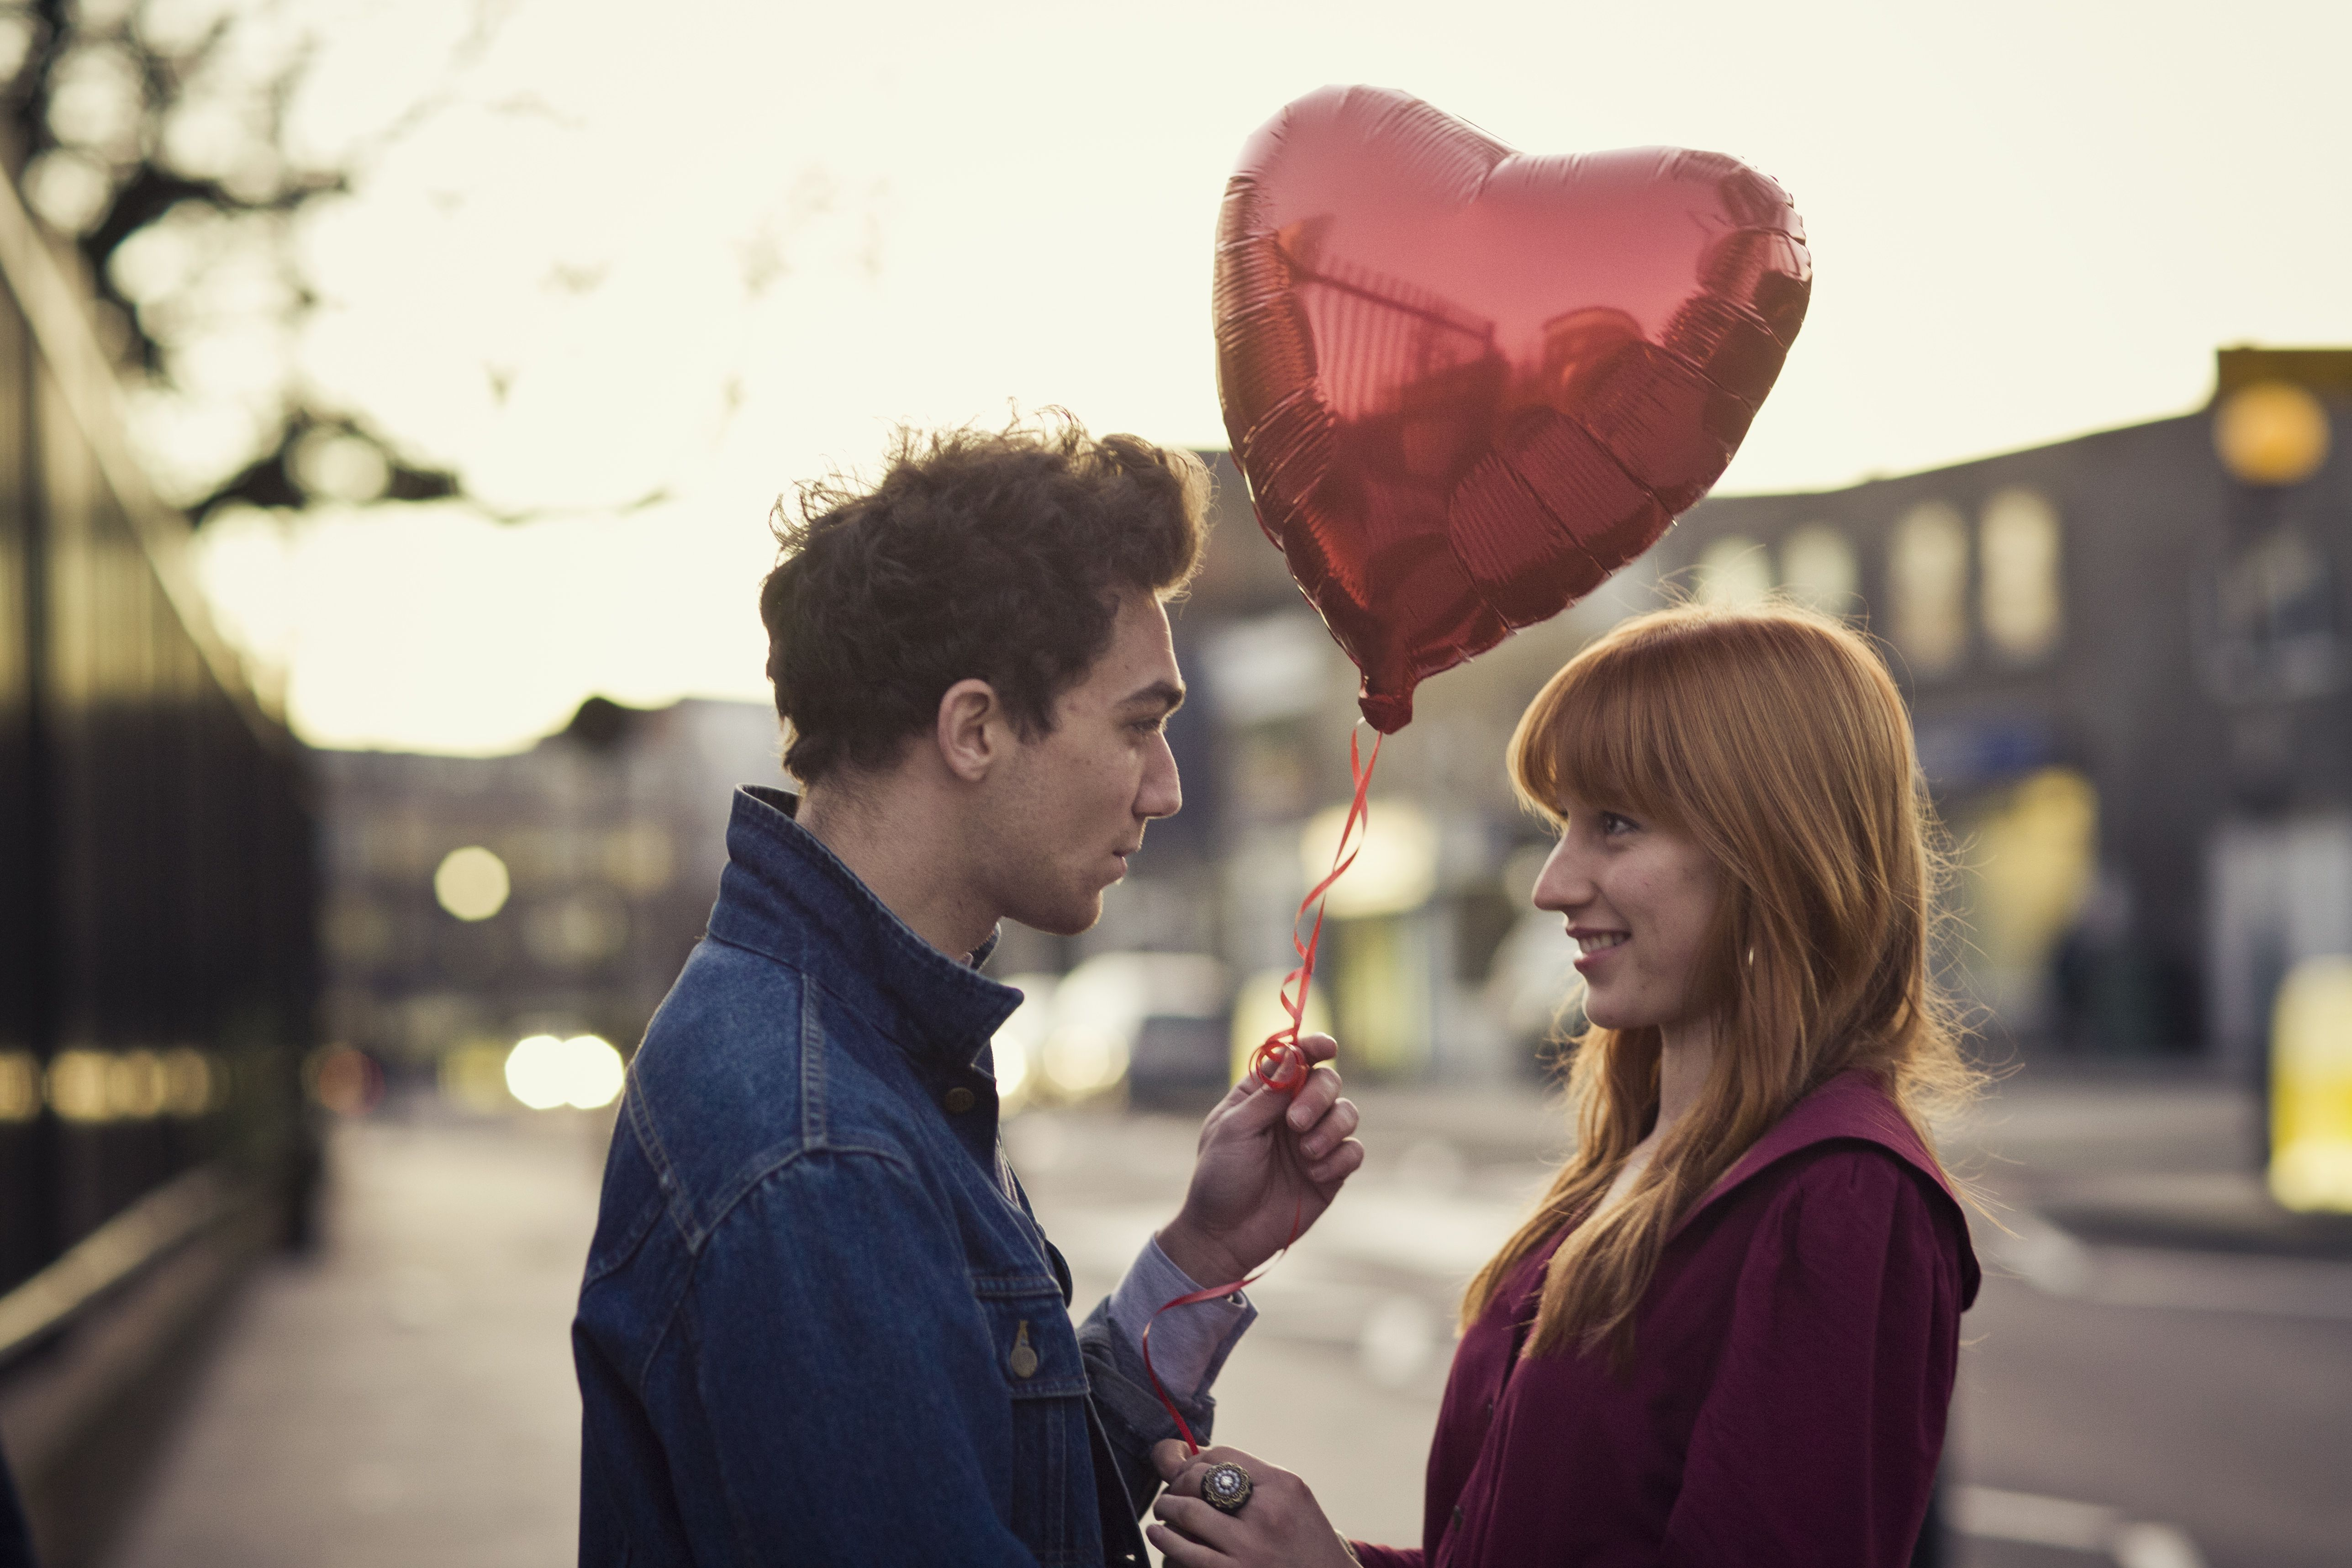 valentines day heart couple - photo #28